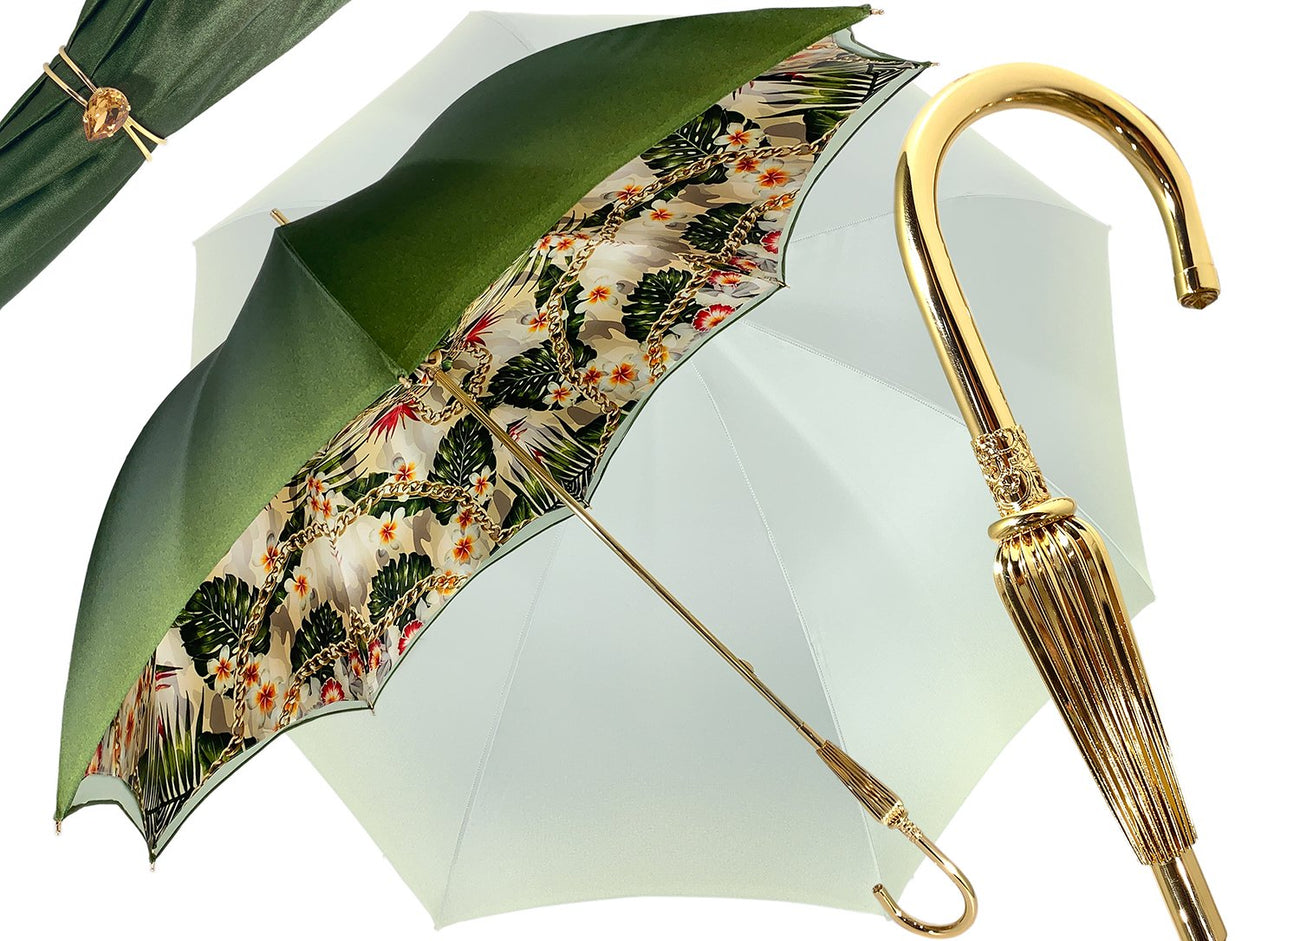 Marchesato UMBRELLAS